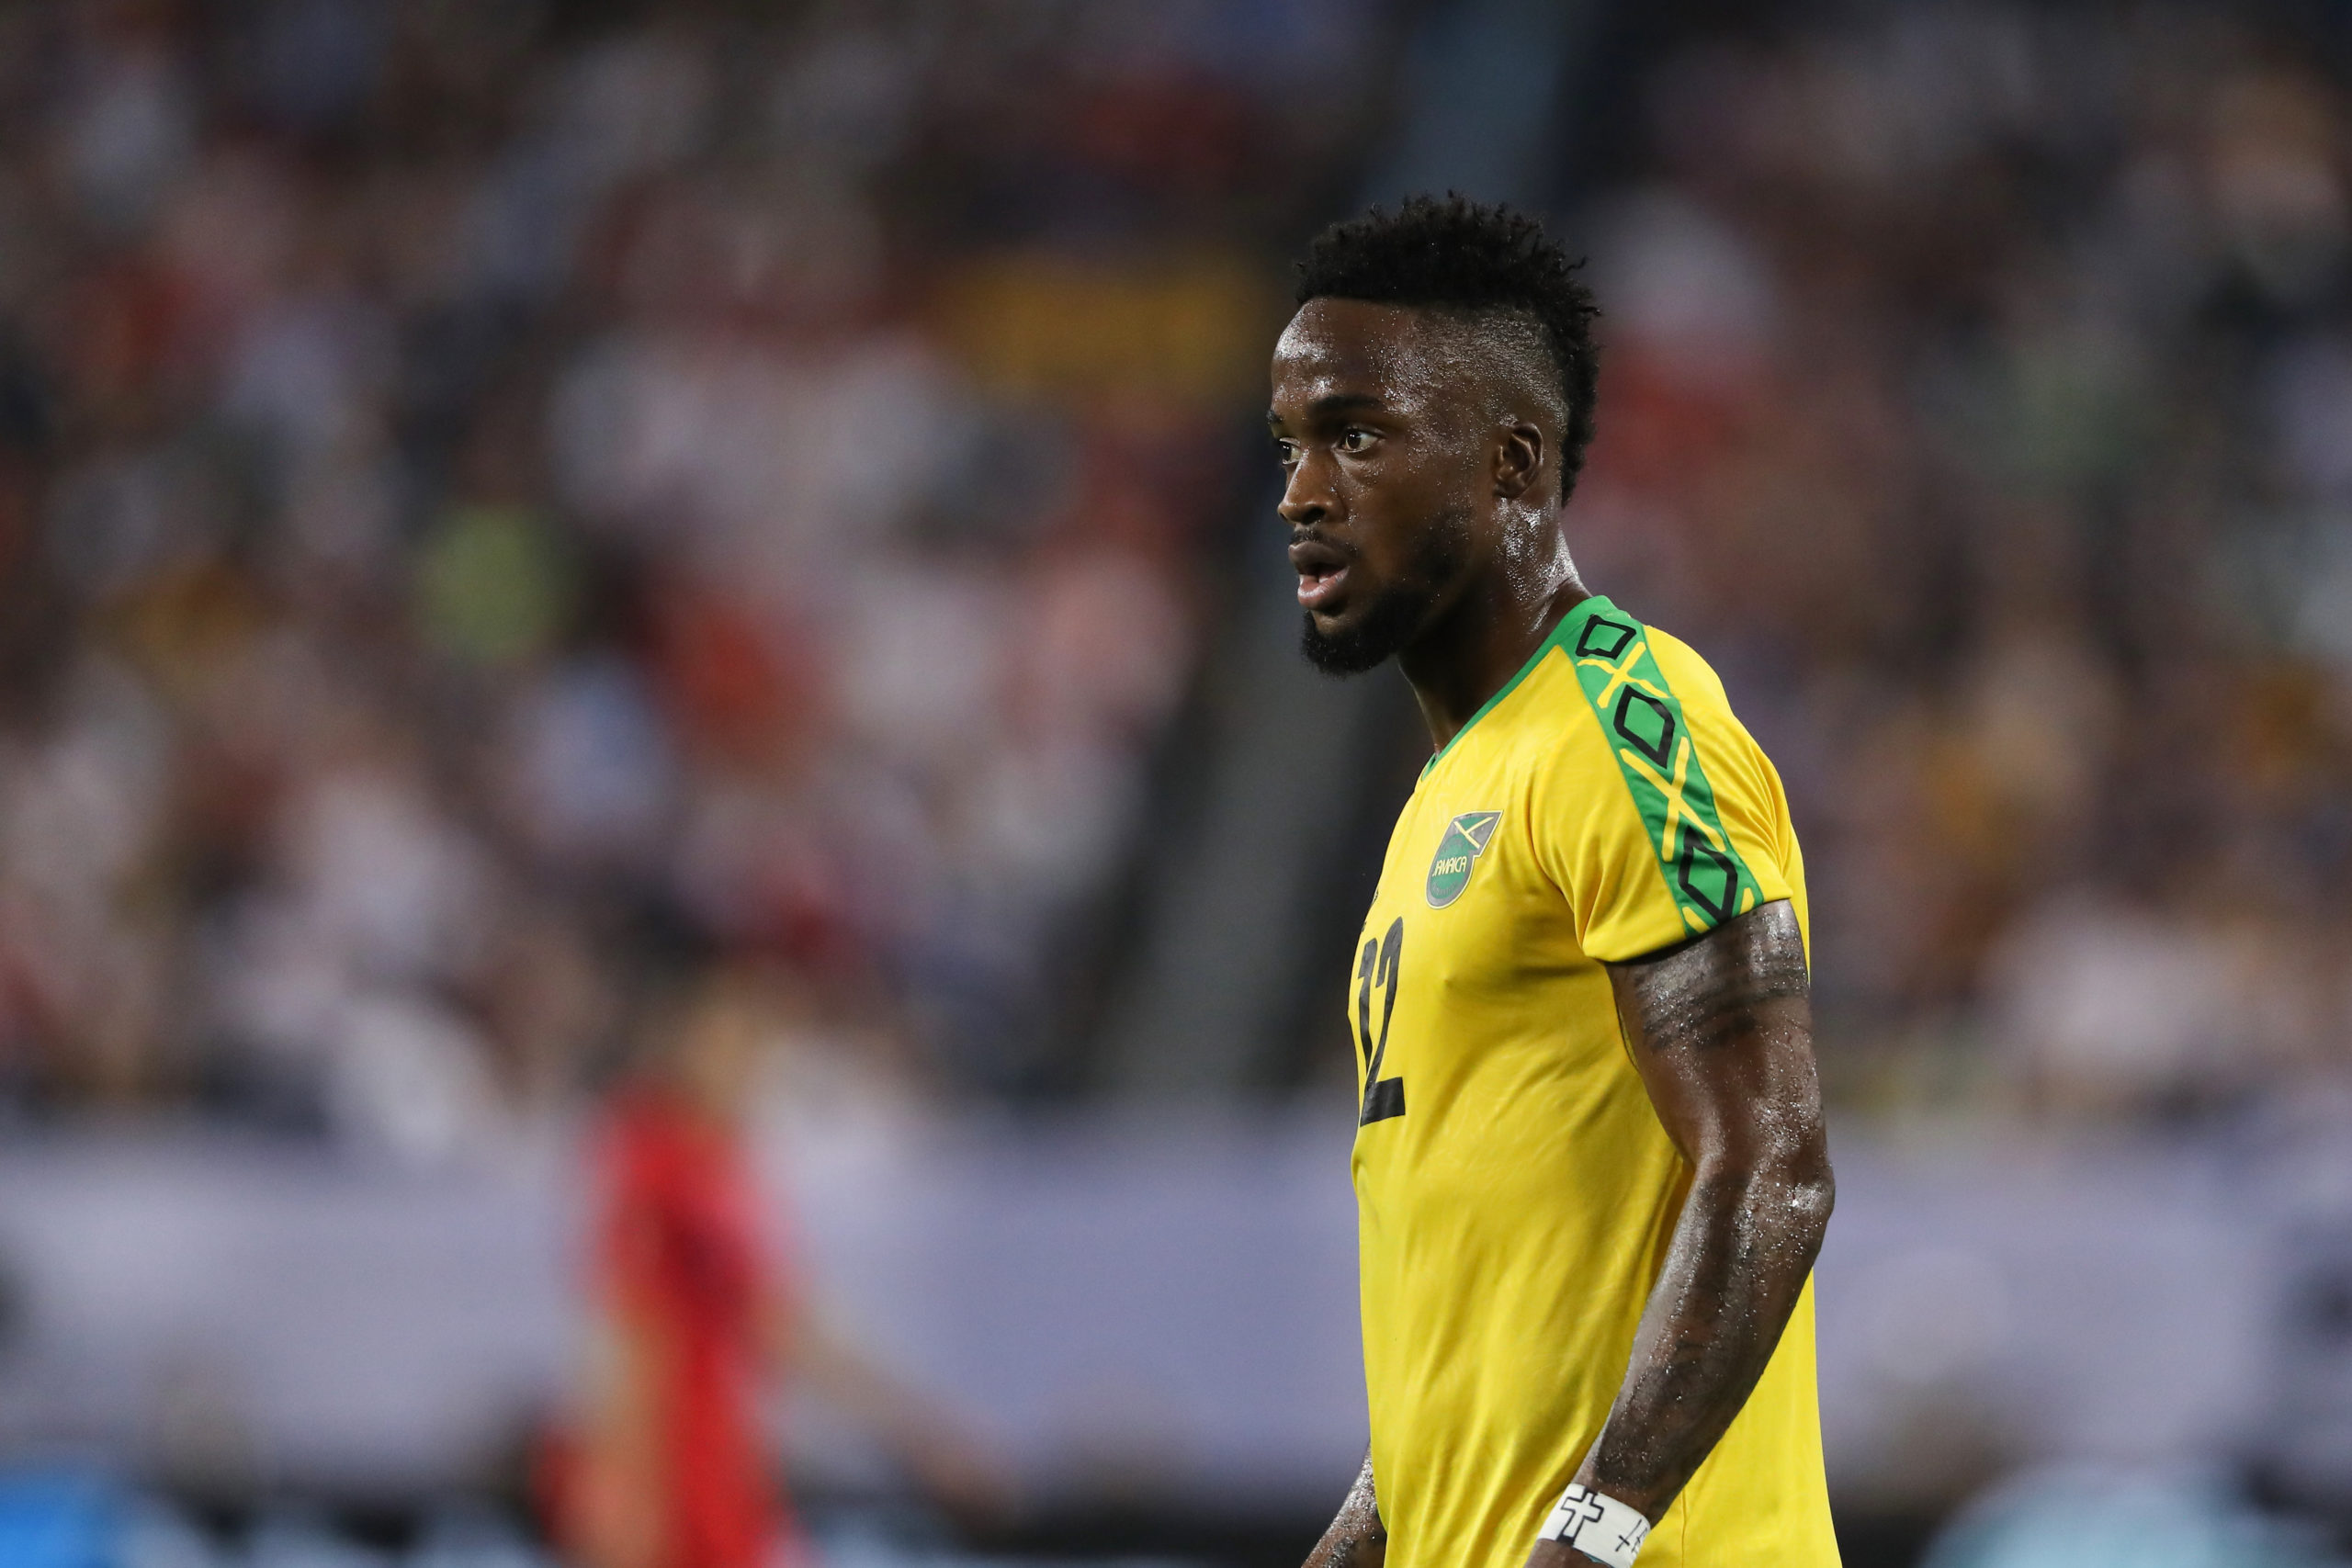 Junior Flemmings of Jamaica during the 2019 CONCACAF Gold Cup Semi Final between Jamaica and United States